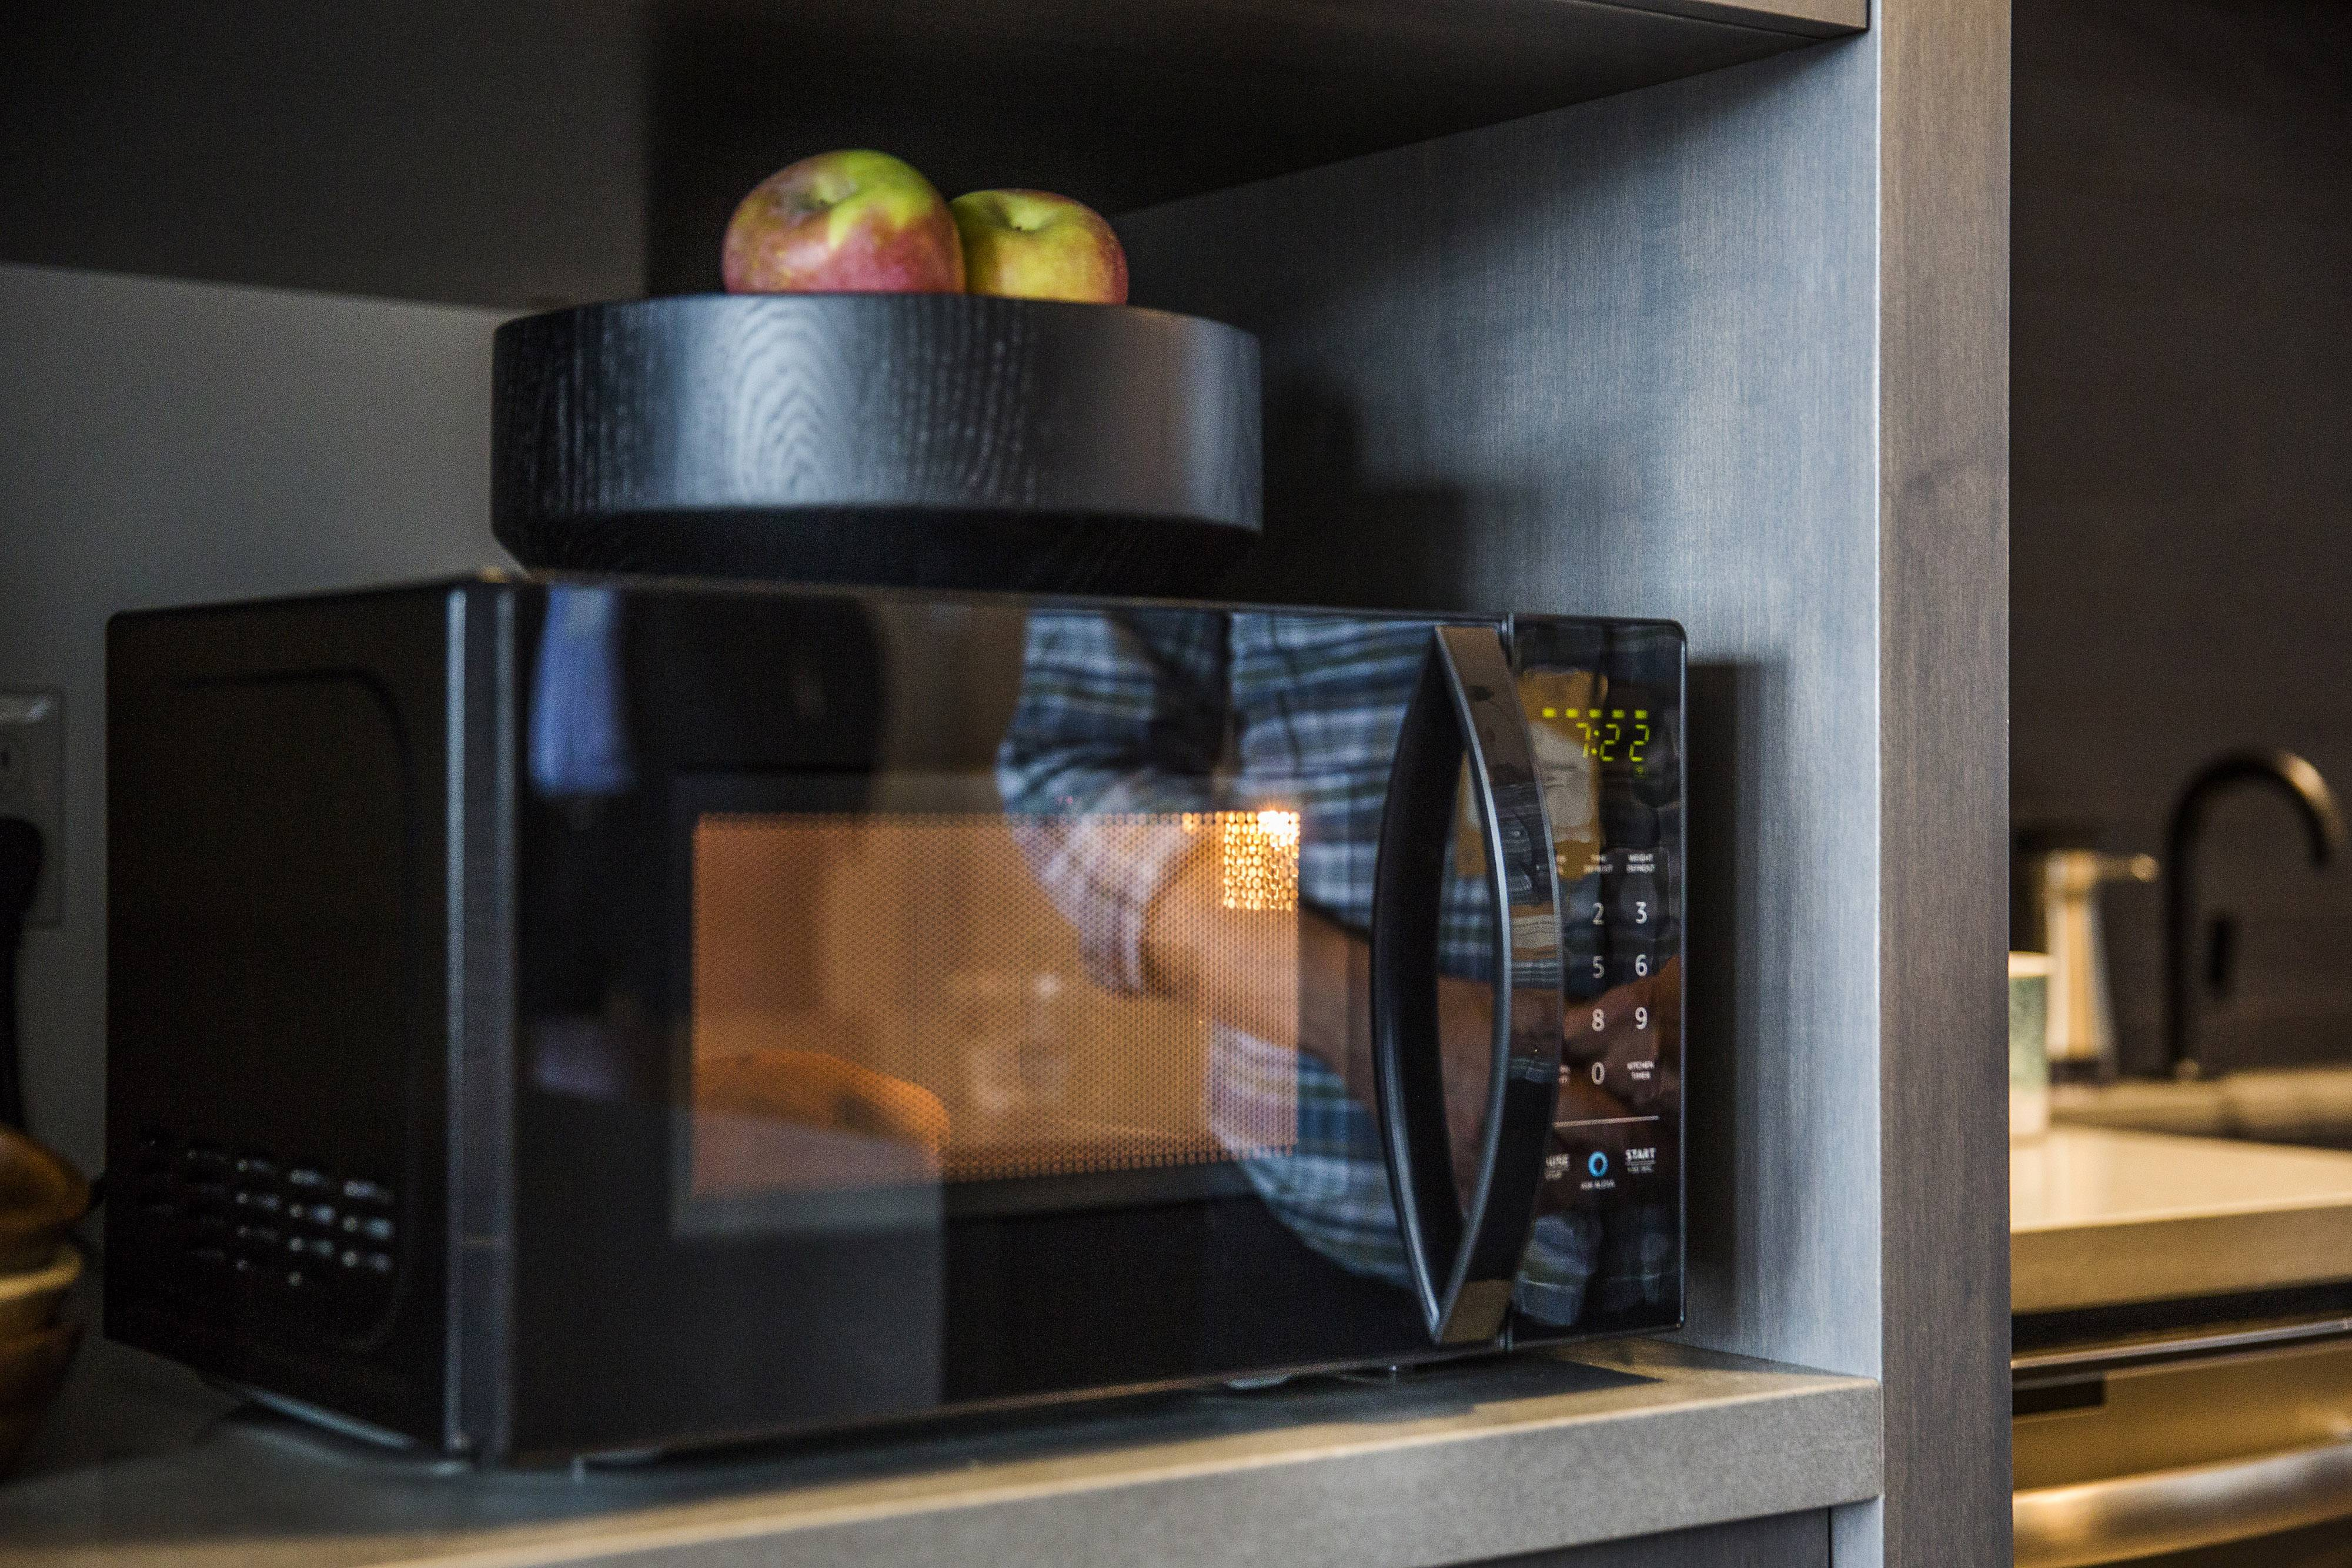 An AmazonBasics Microwave sits on display during an unveiling event at the Amazon.com Spheres headquarters in Seattle on Thursday.